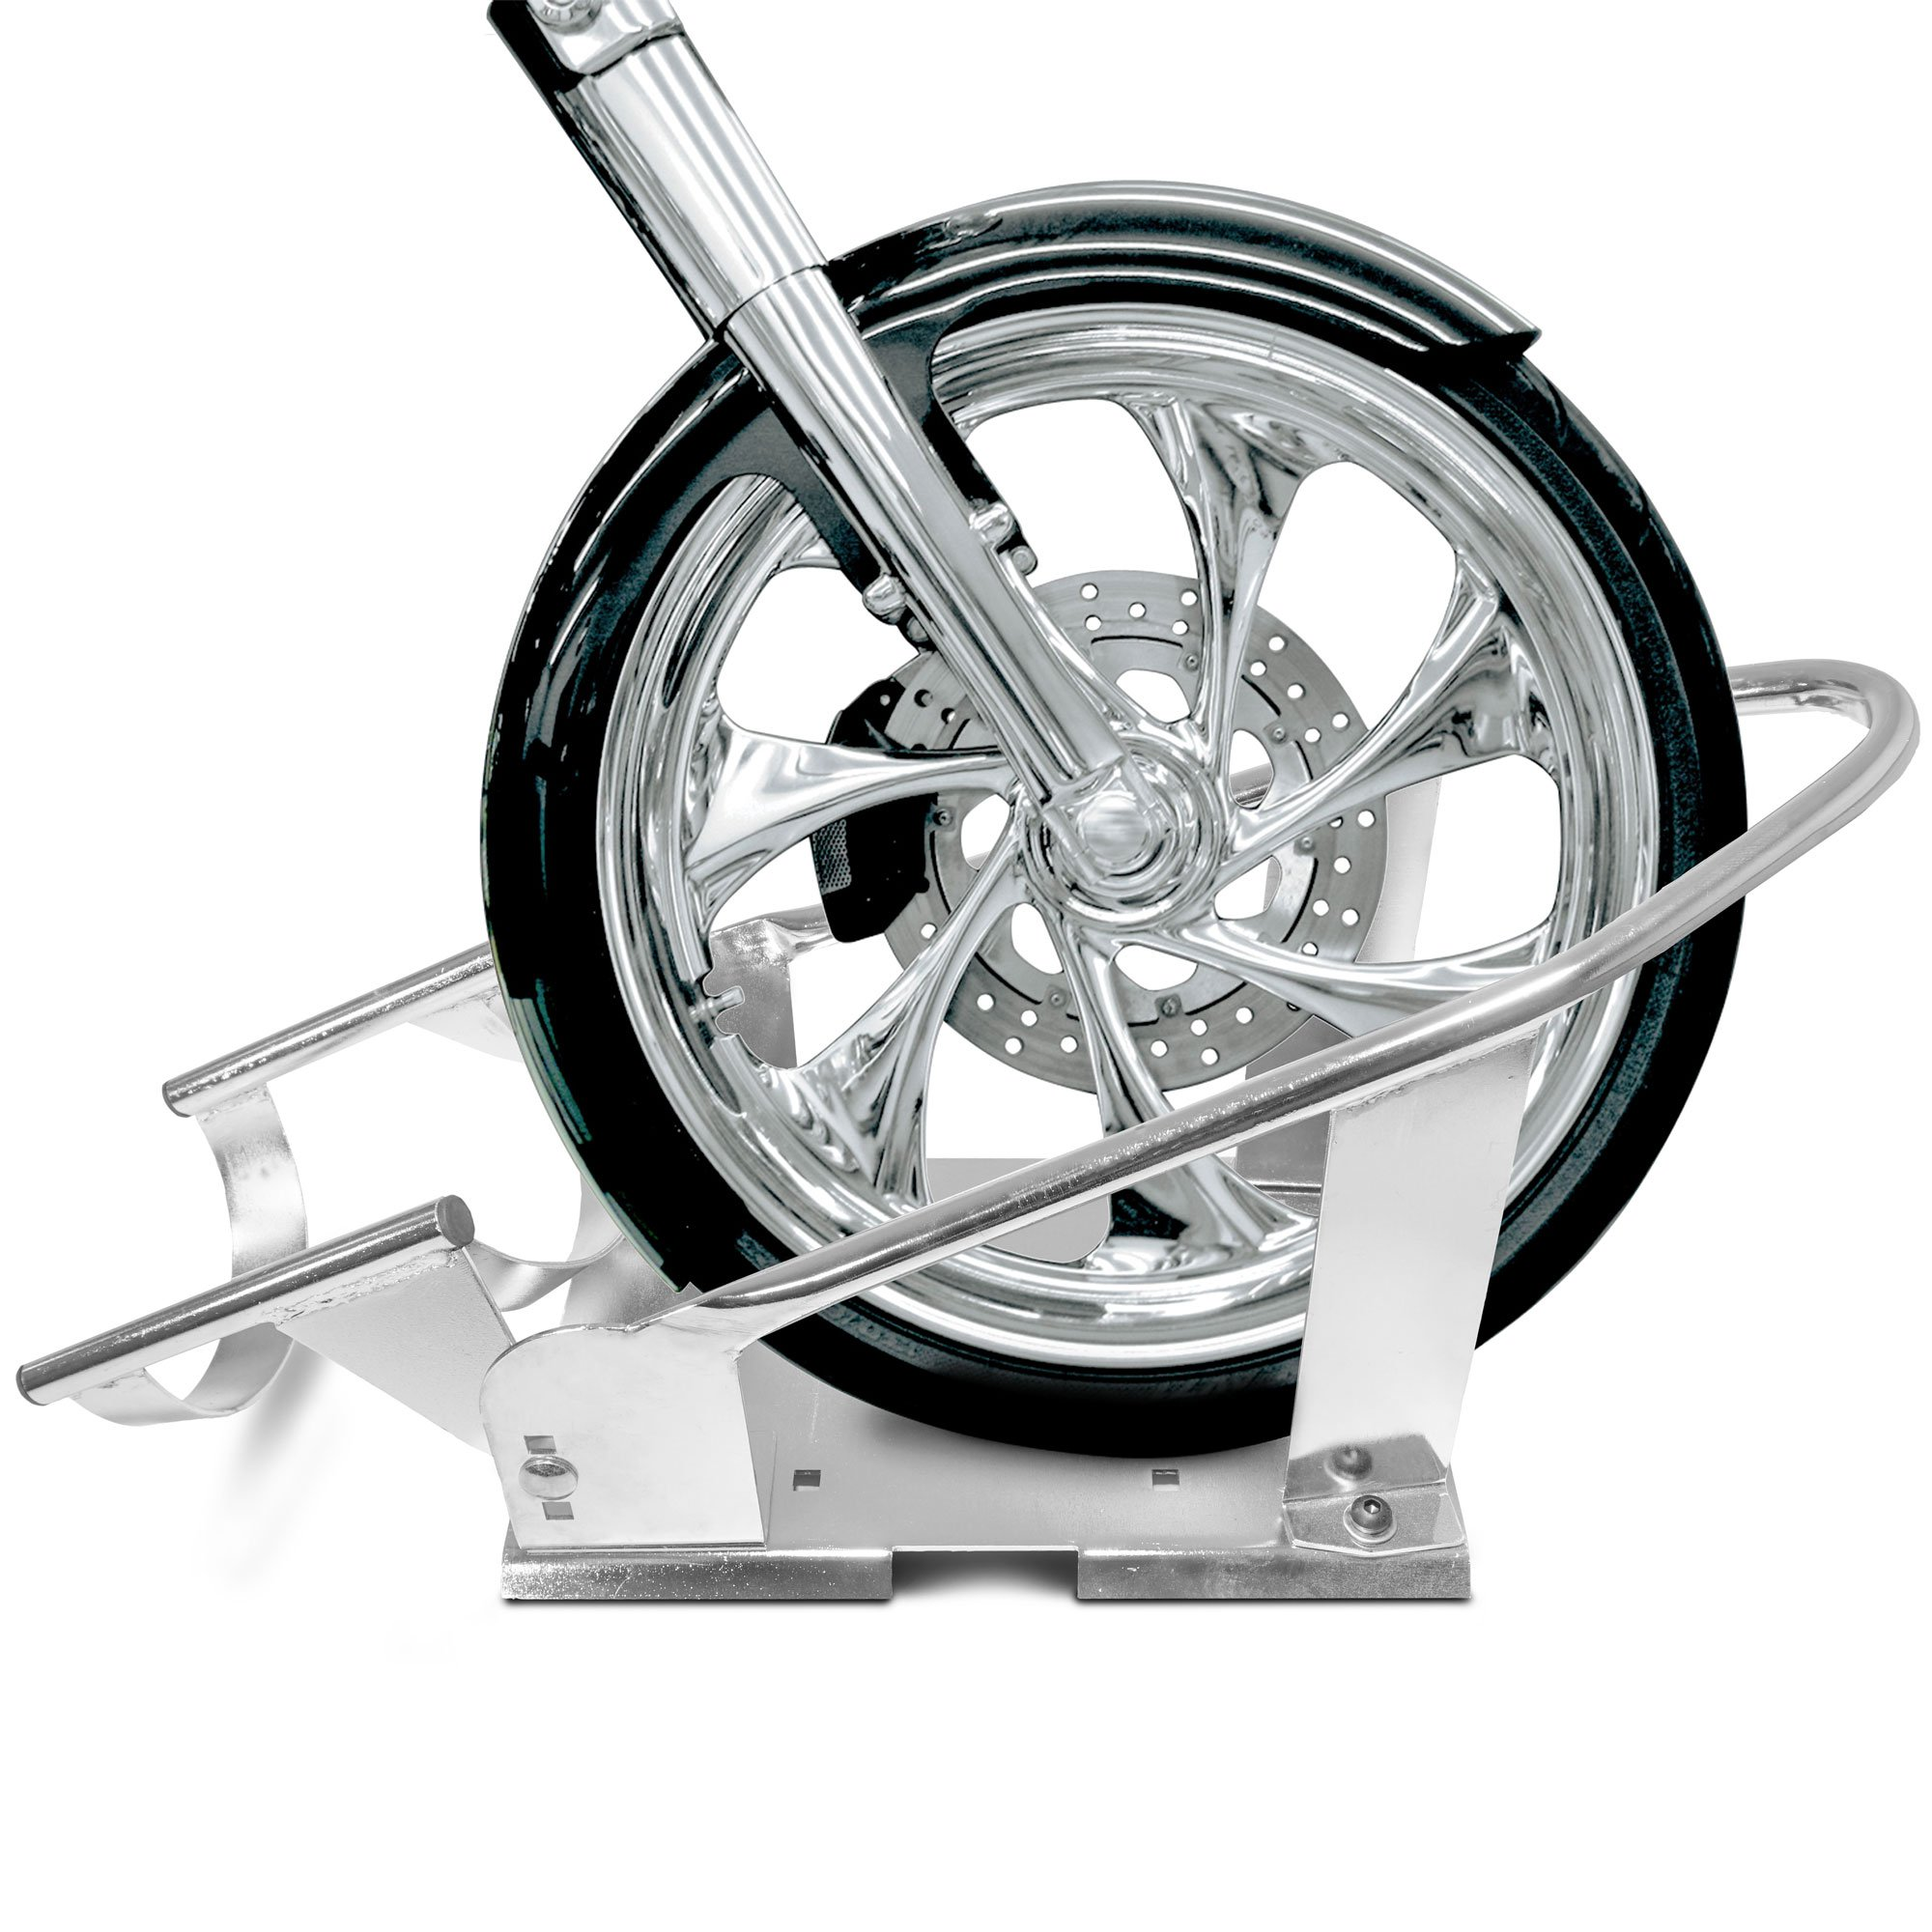 3 Position Adjustable Chrome Motorcycle Wheel Chock Stand Truck Trailer Mount by Titan Ramps (Image #7)